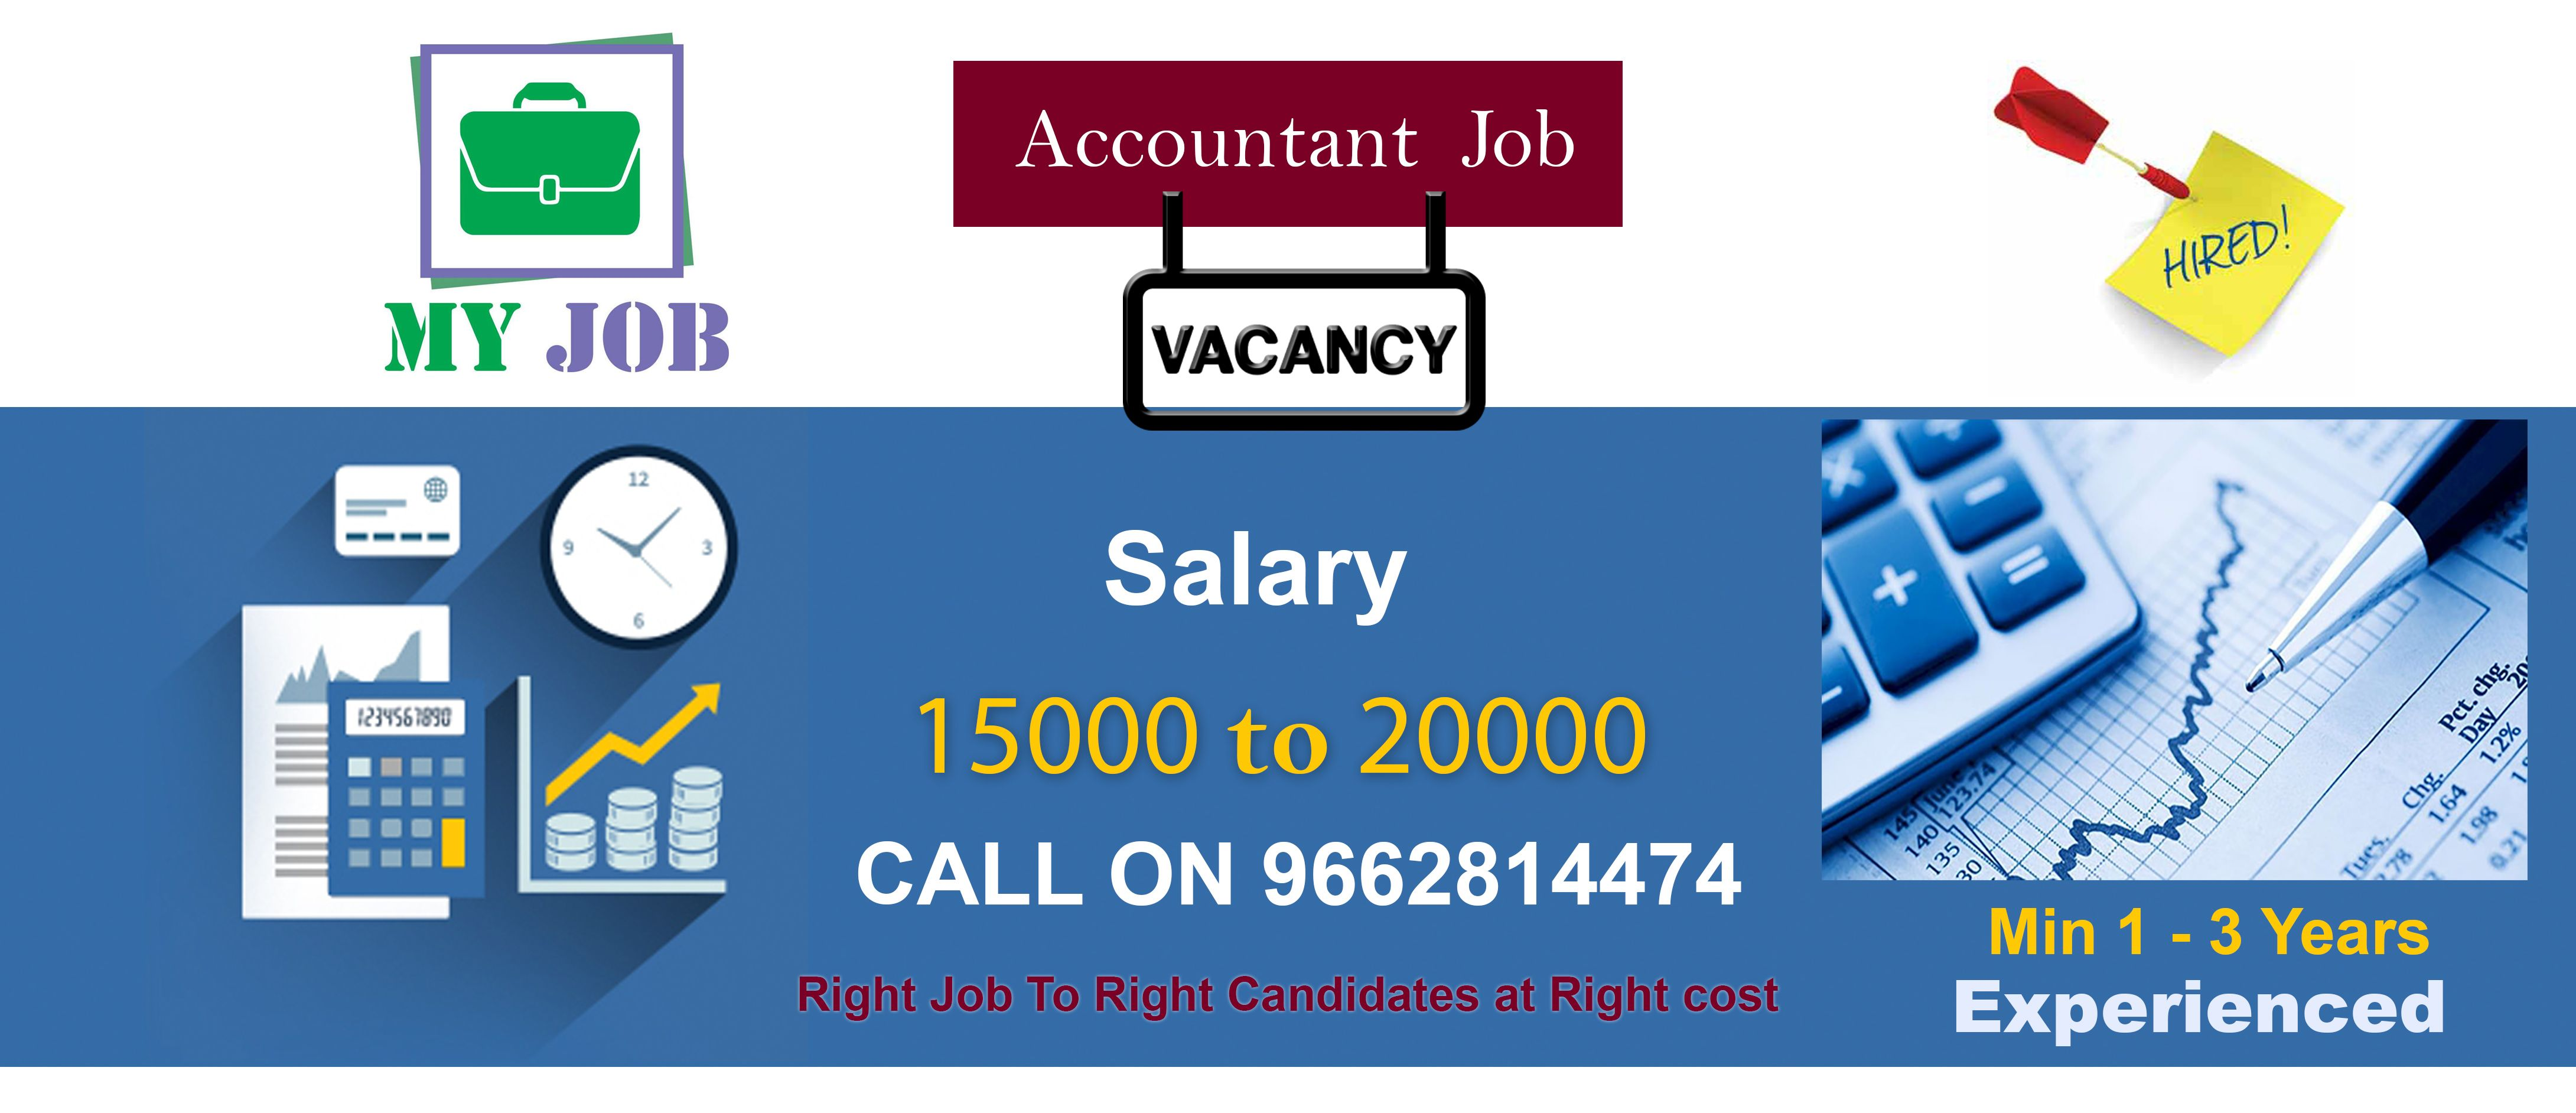 Accountant job for experienced in accountant and tally